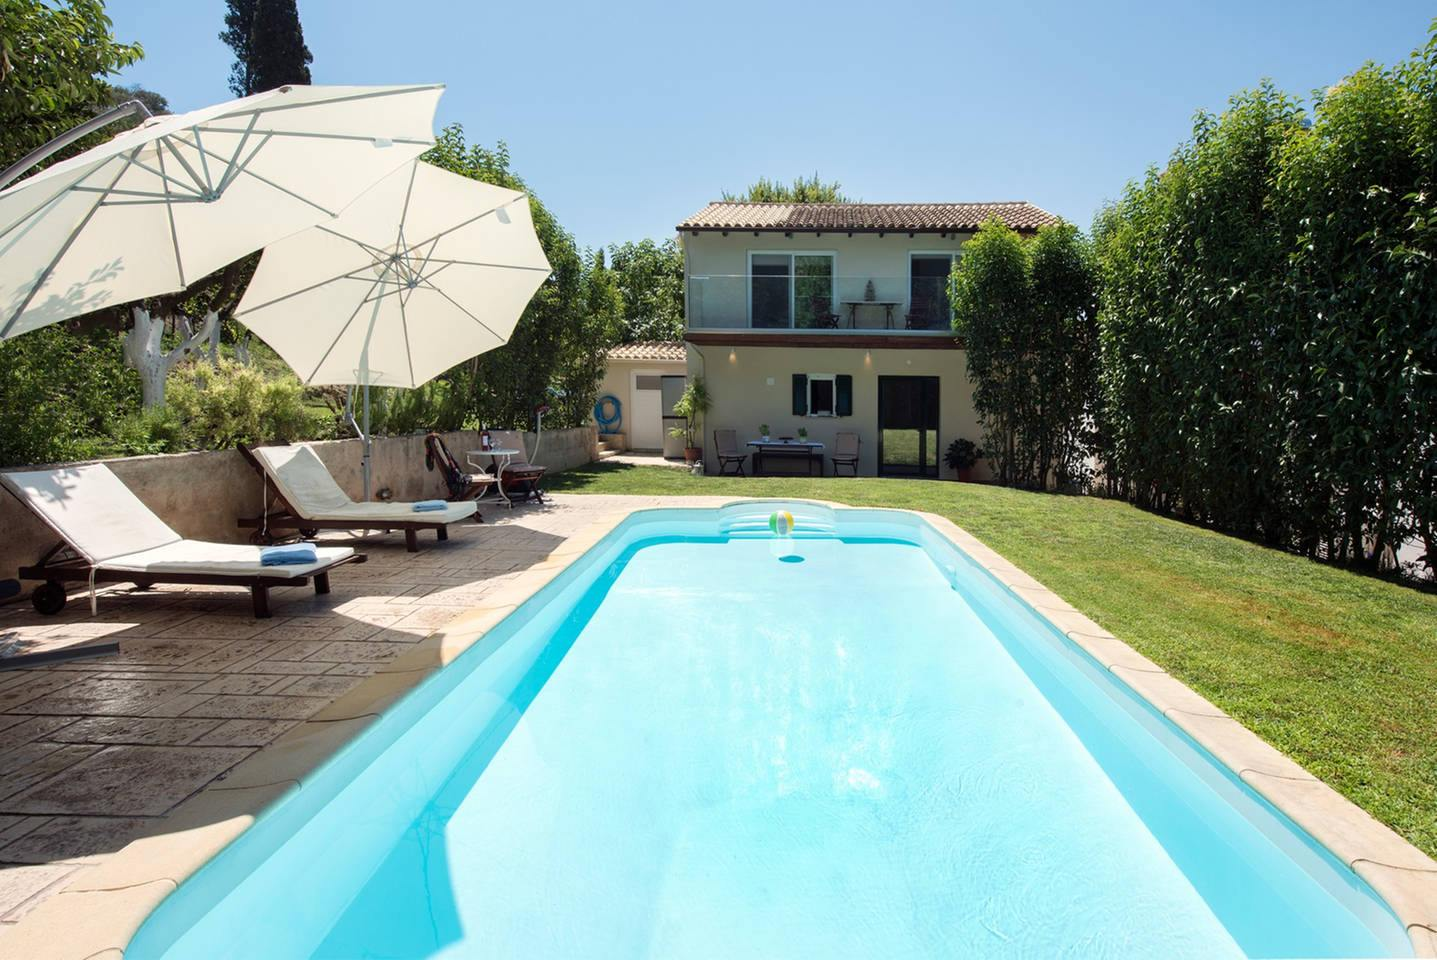 corfu family villas - corfu luxury villas - ionian summer